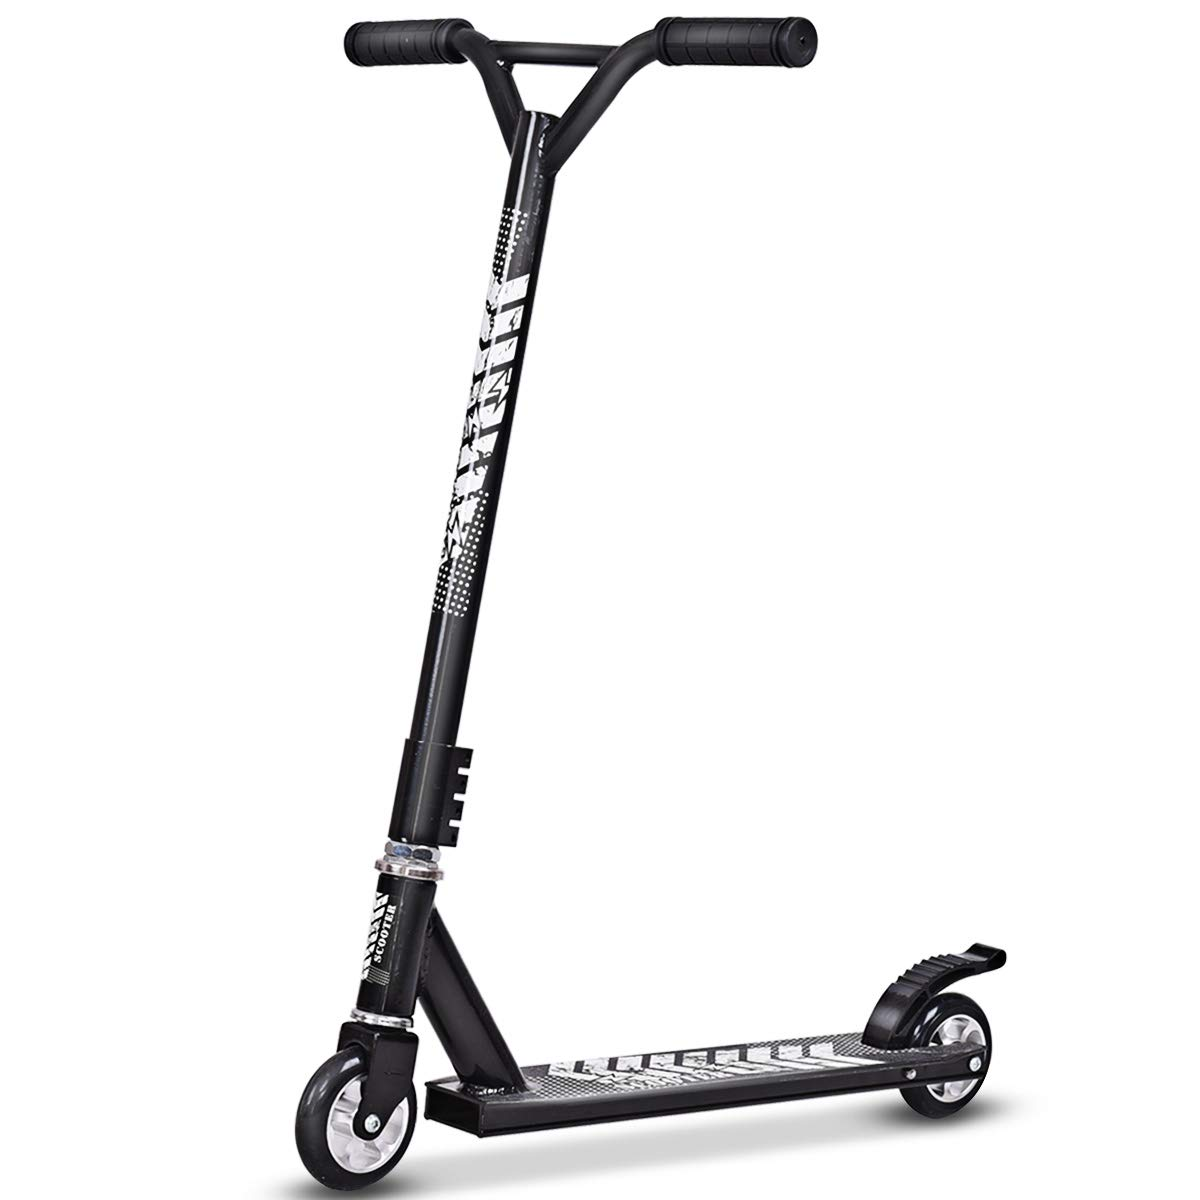 Goplus Stunt Scooter, 2 Wheels Aluminum Scooters Freestyle for Kids Adults Black by Goplus